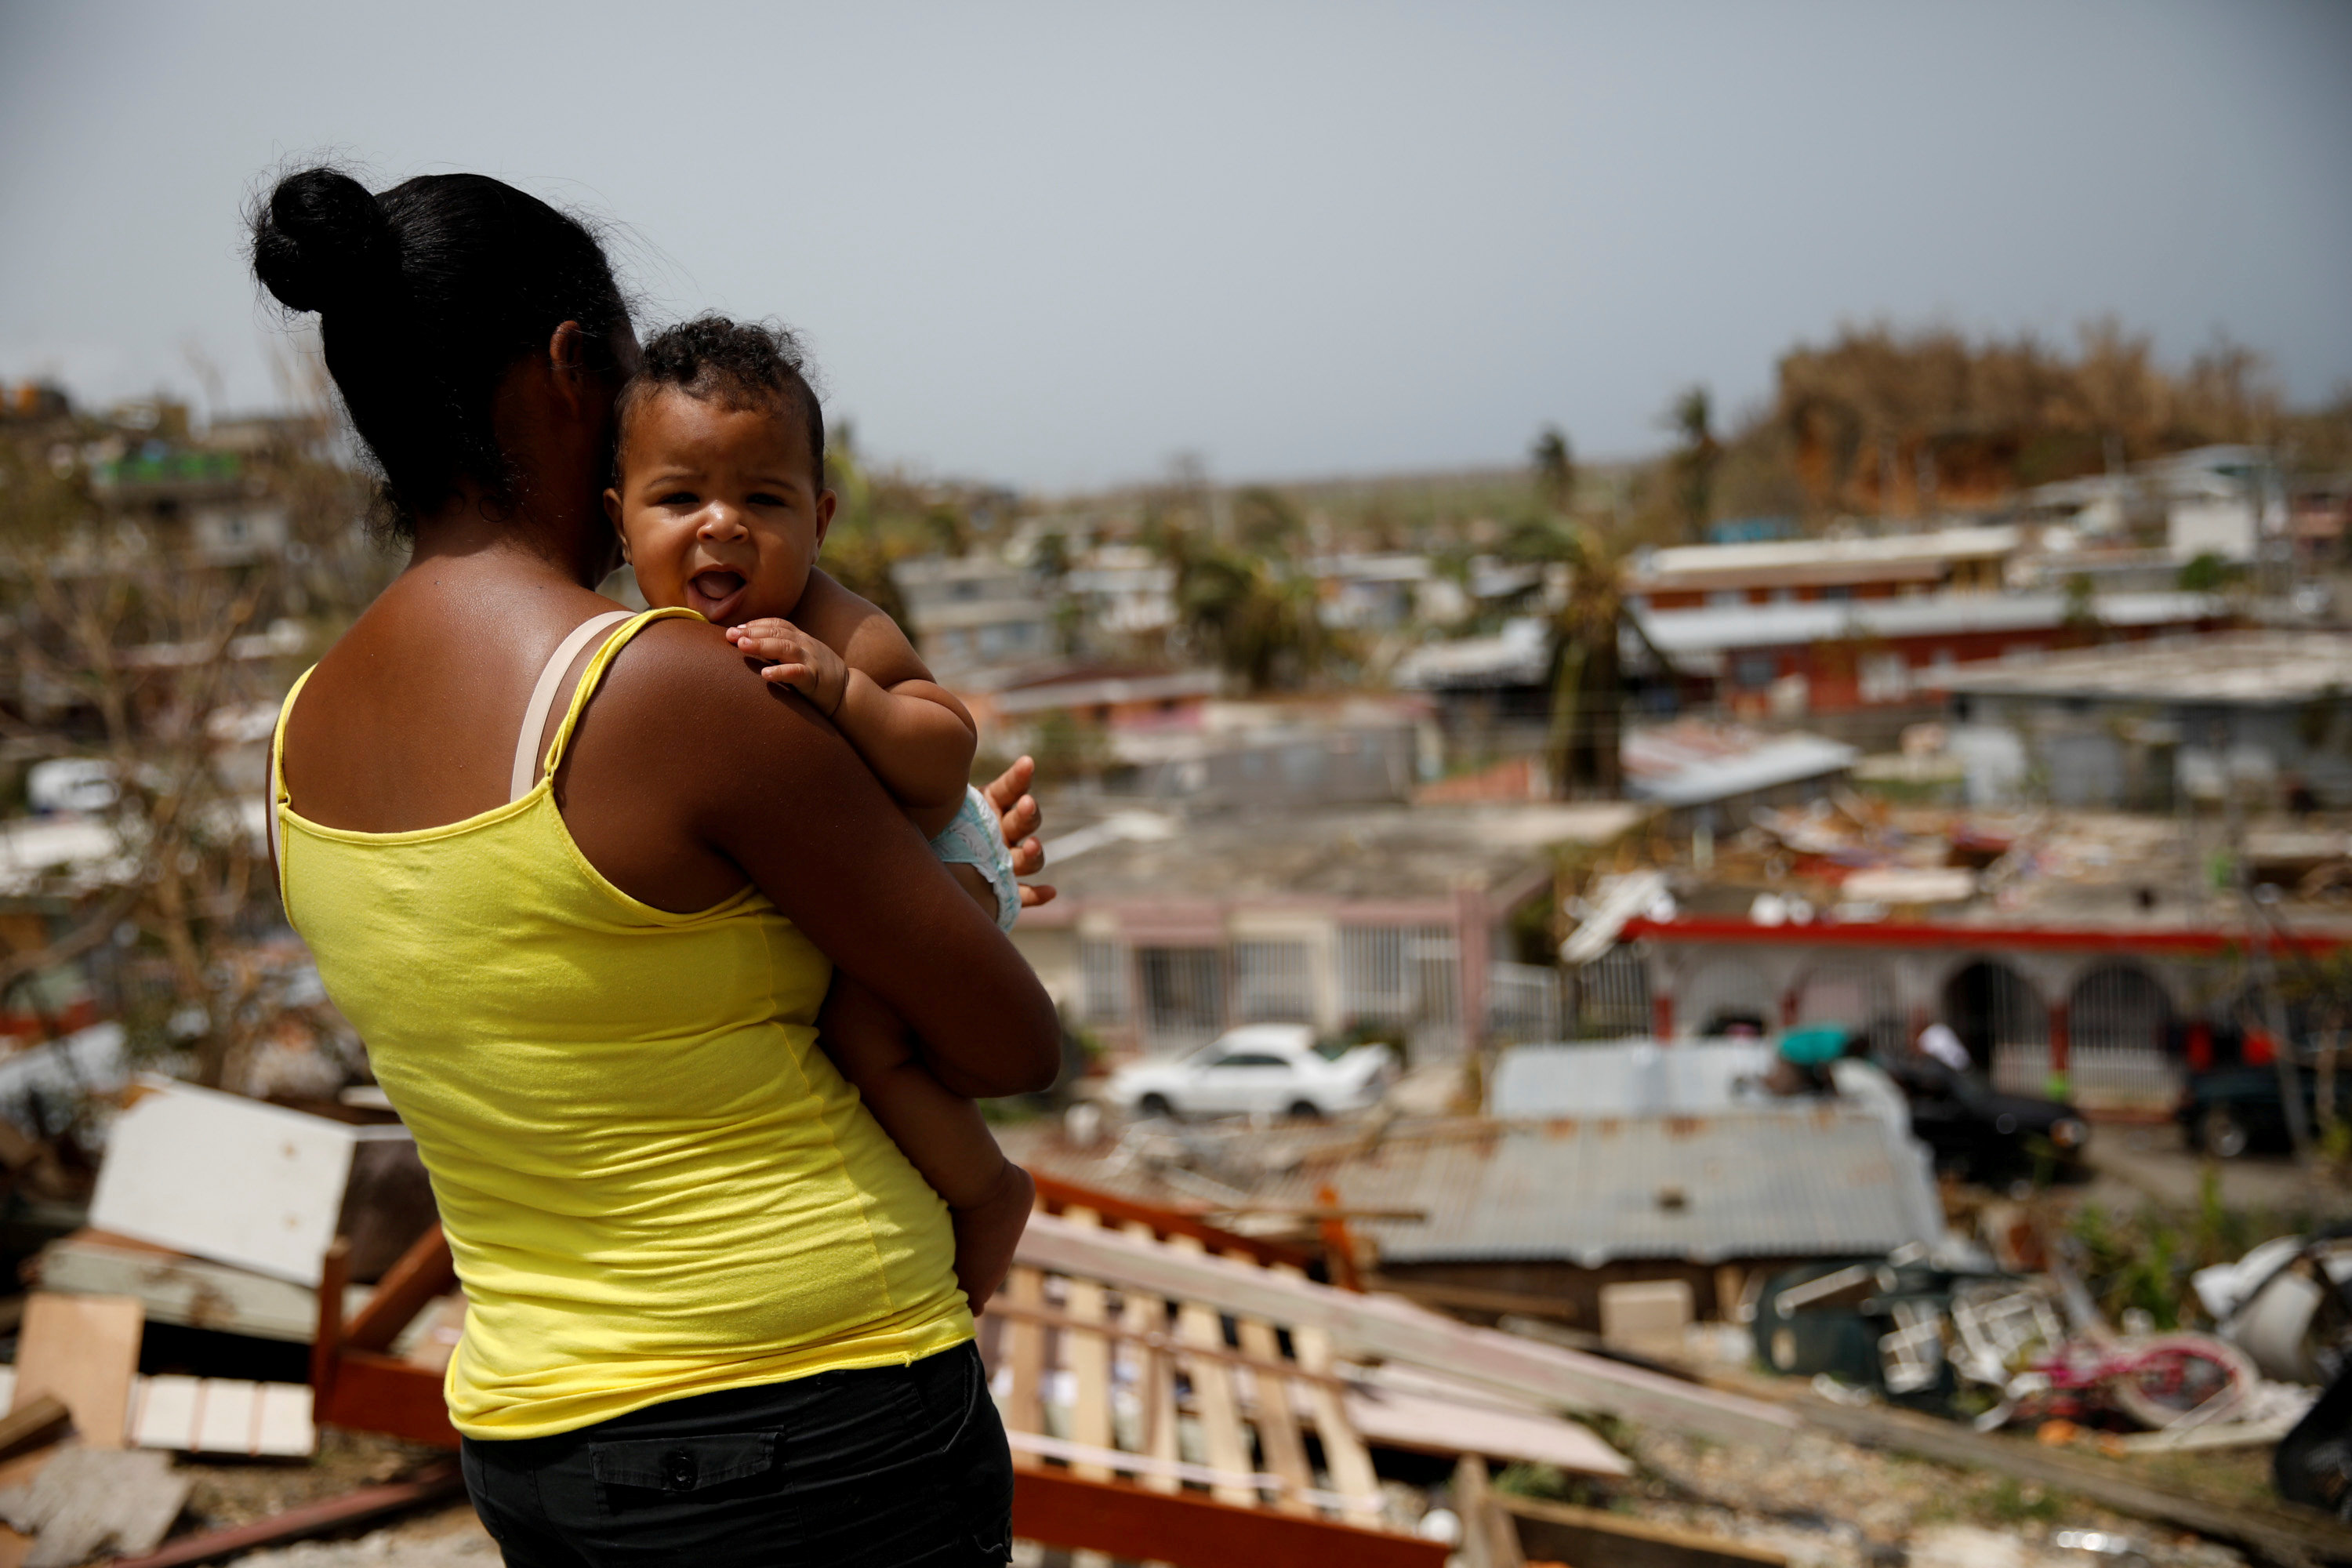 FILE PHOTO: Ysamar Figueroa carrying her son Saniel, looks at the damage in the neighbourhood after the area was hit by Hurricane Maria, in Canovanas, Puerto Rico September 26, 2017. REUTERS/Carlos Garcia Rawlins/File Photo